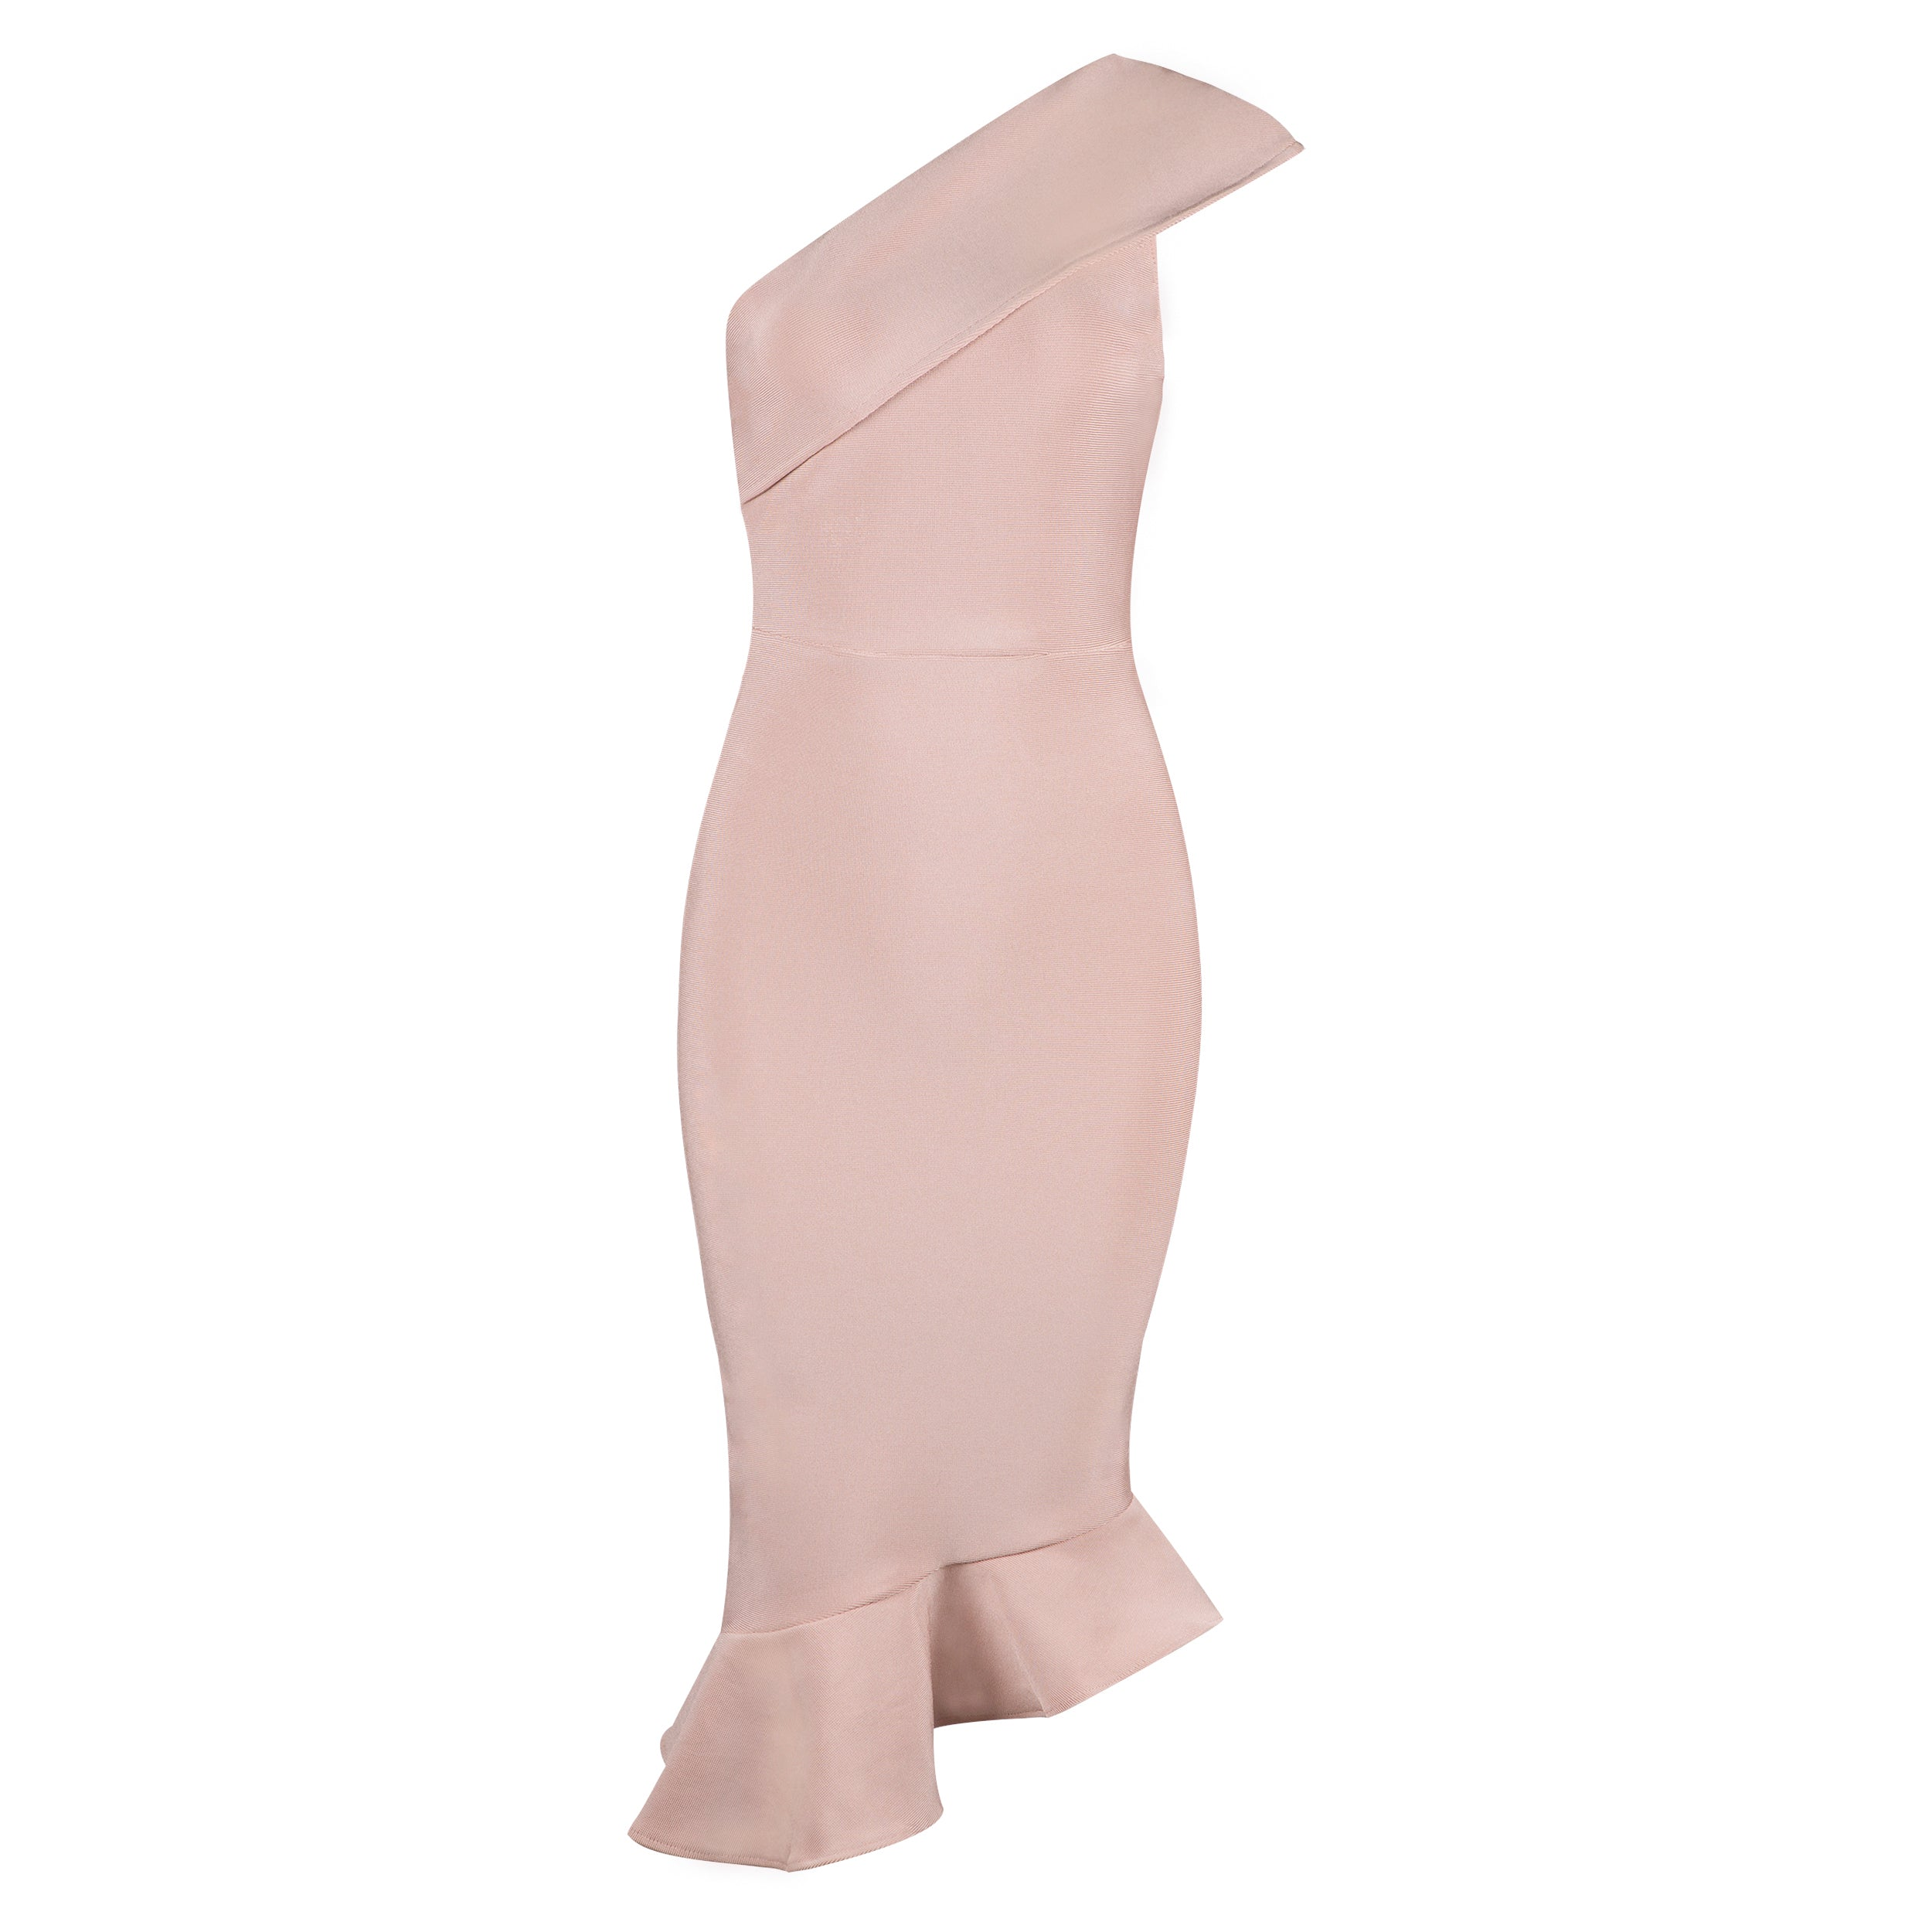 Stella Bandage Dress: Apricot Pink